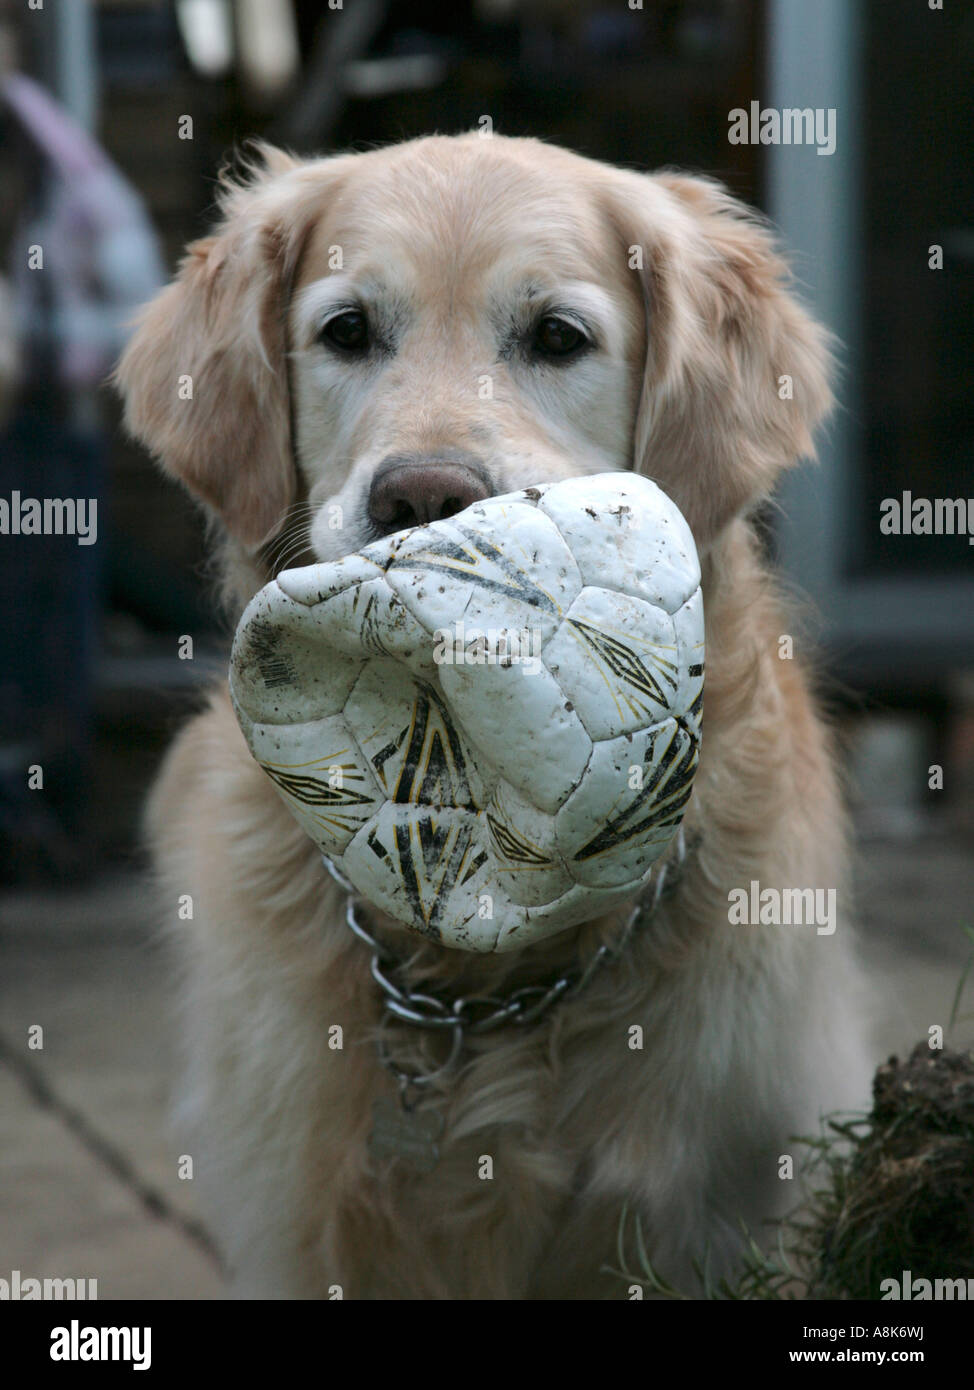 A golden retriever with a punctured football. - Stock Image